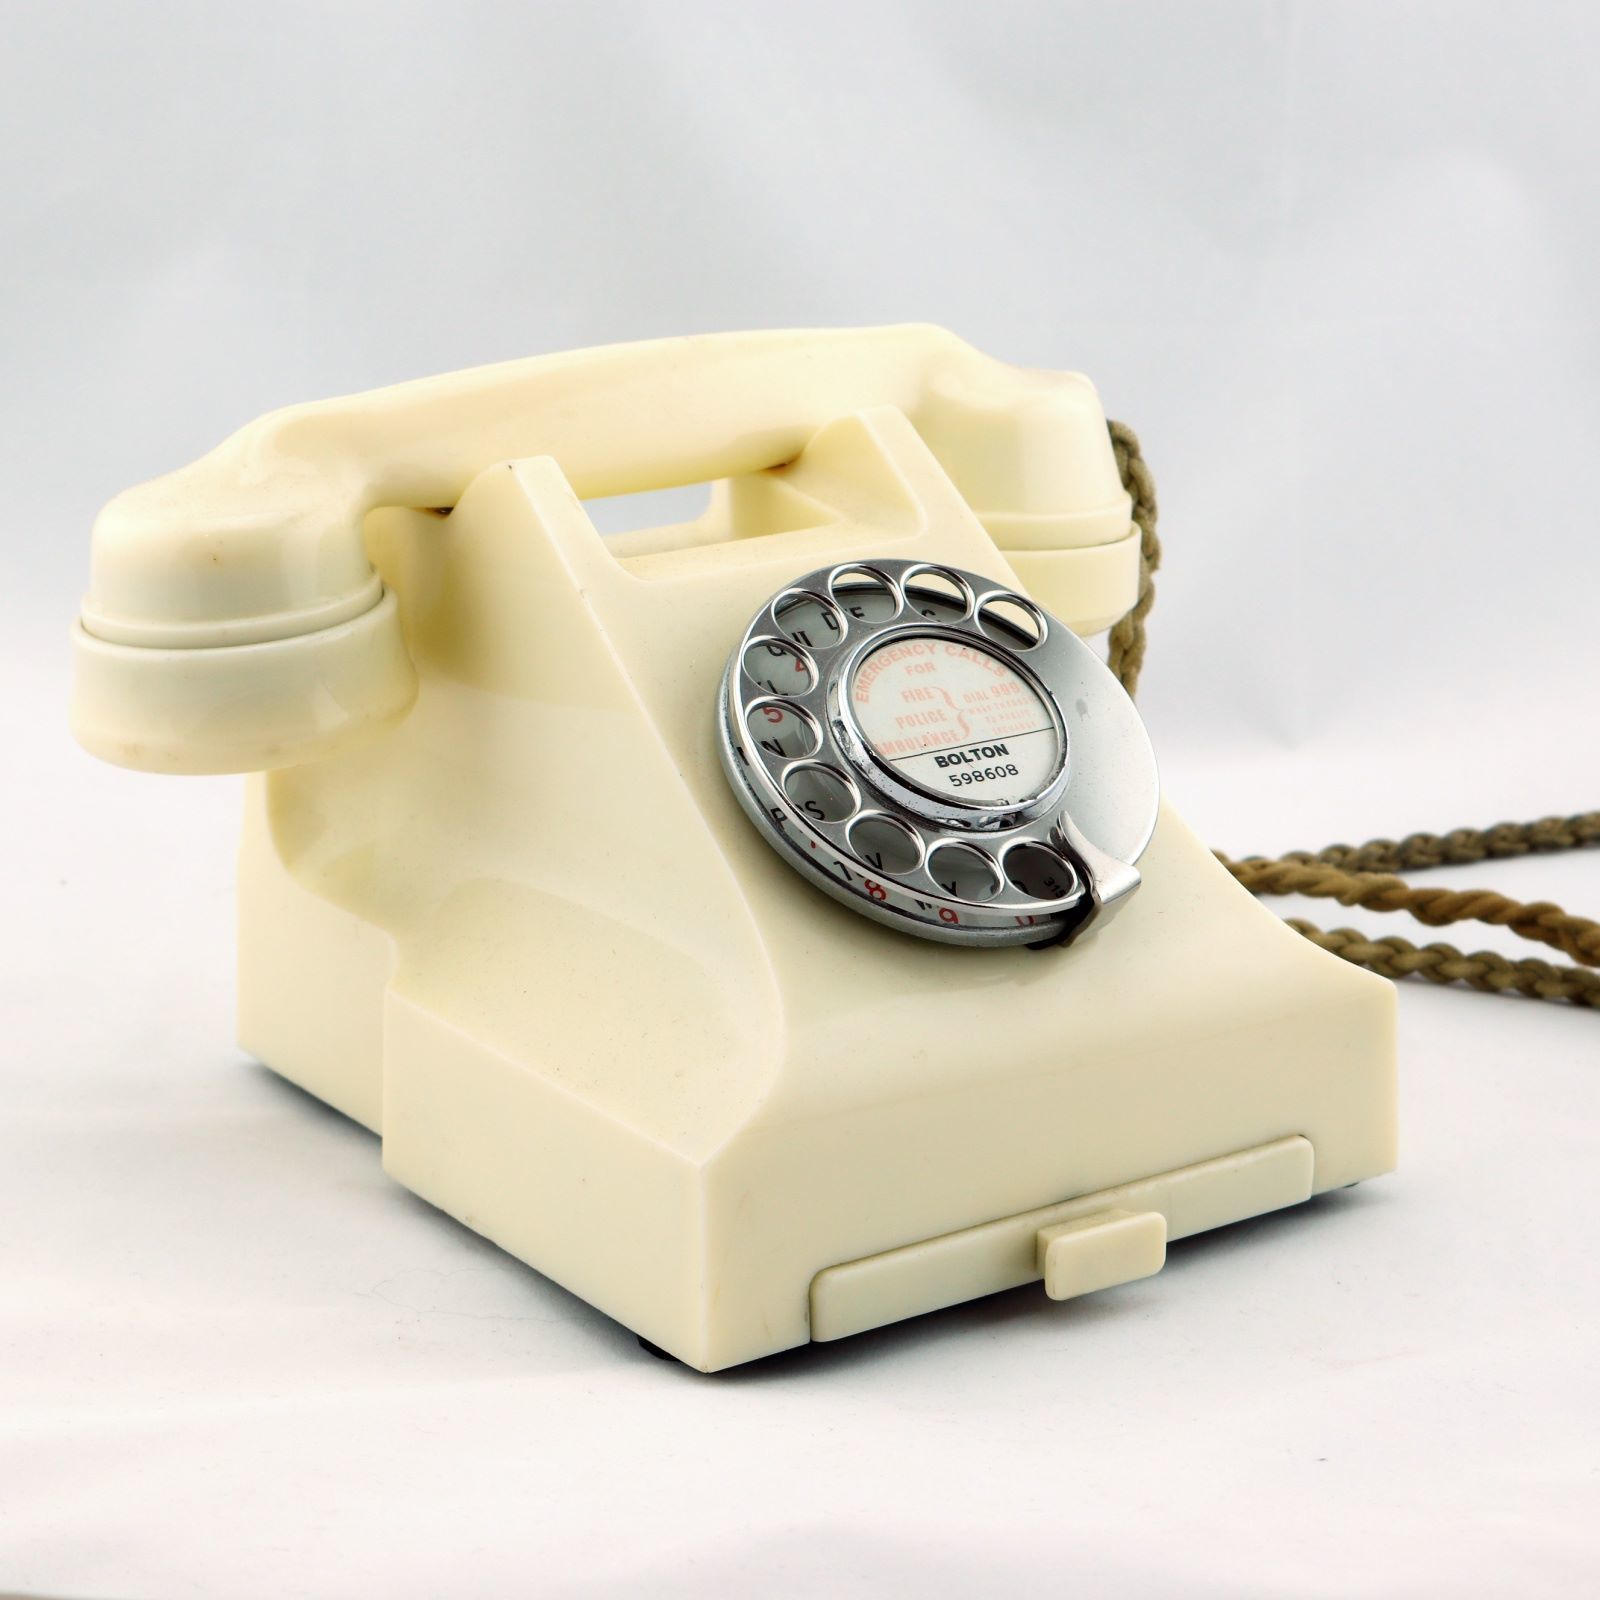 Vintage telephones are for sale